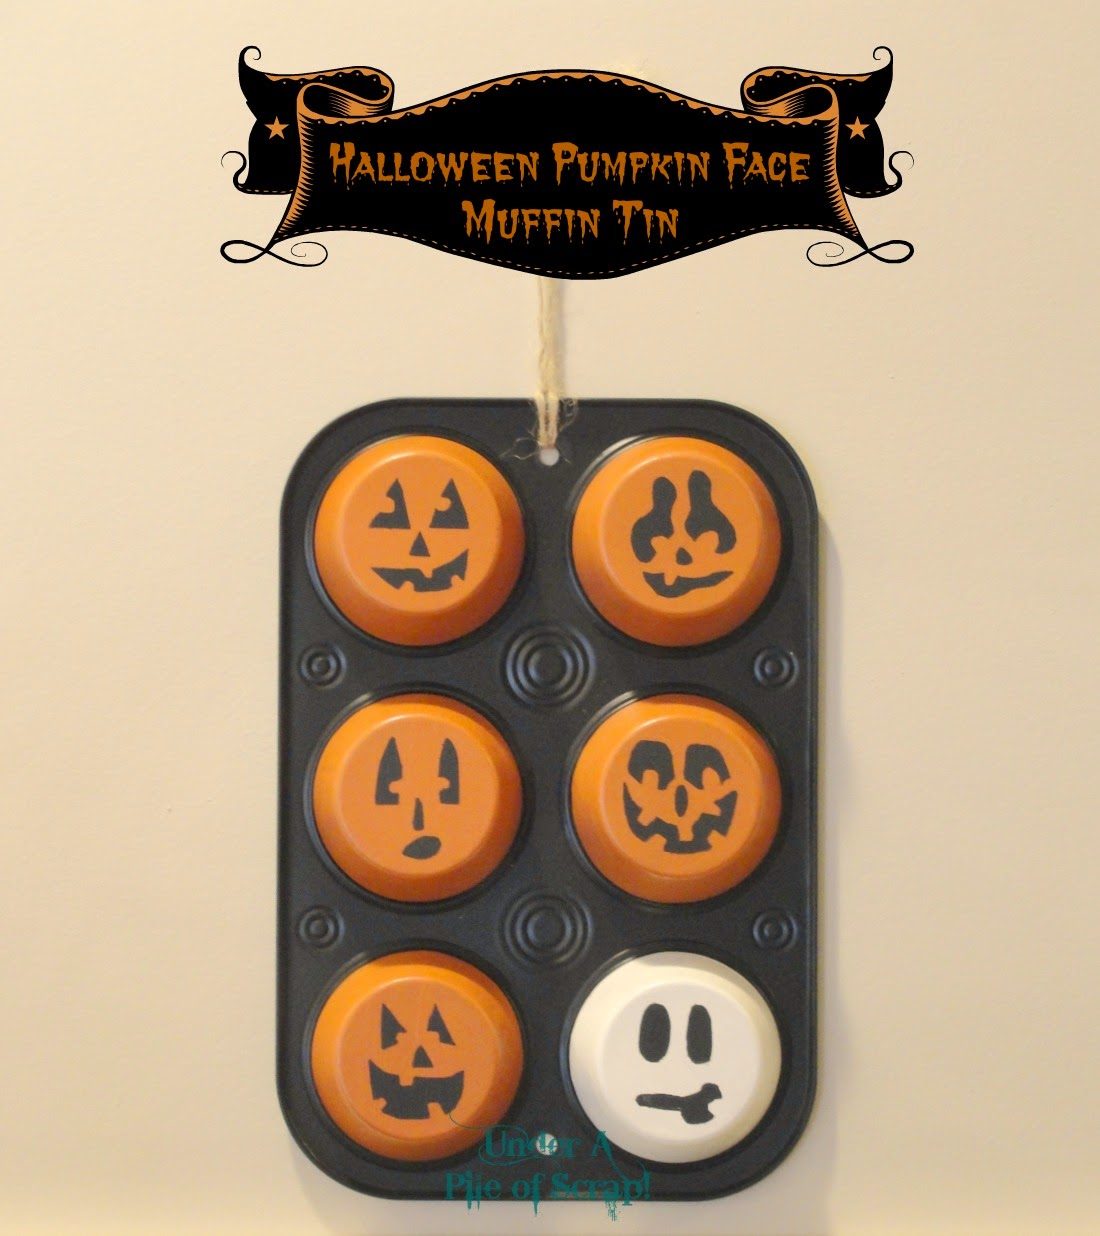 halloween, muffin tin, October, ghost, pumkin, pumpkins, pumkins,